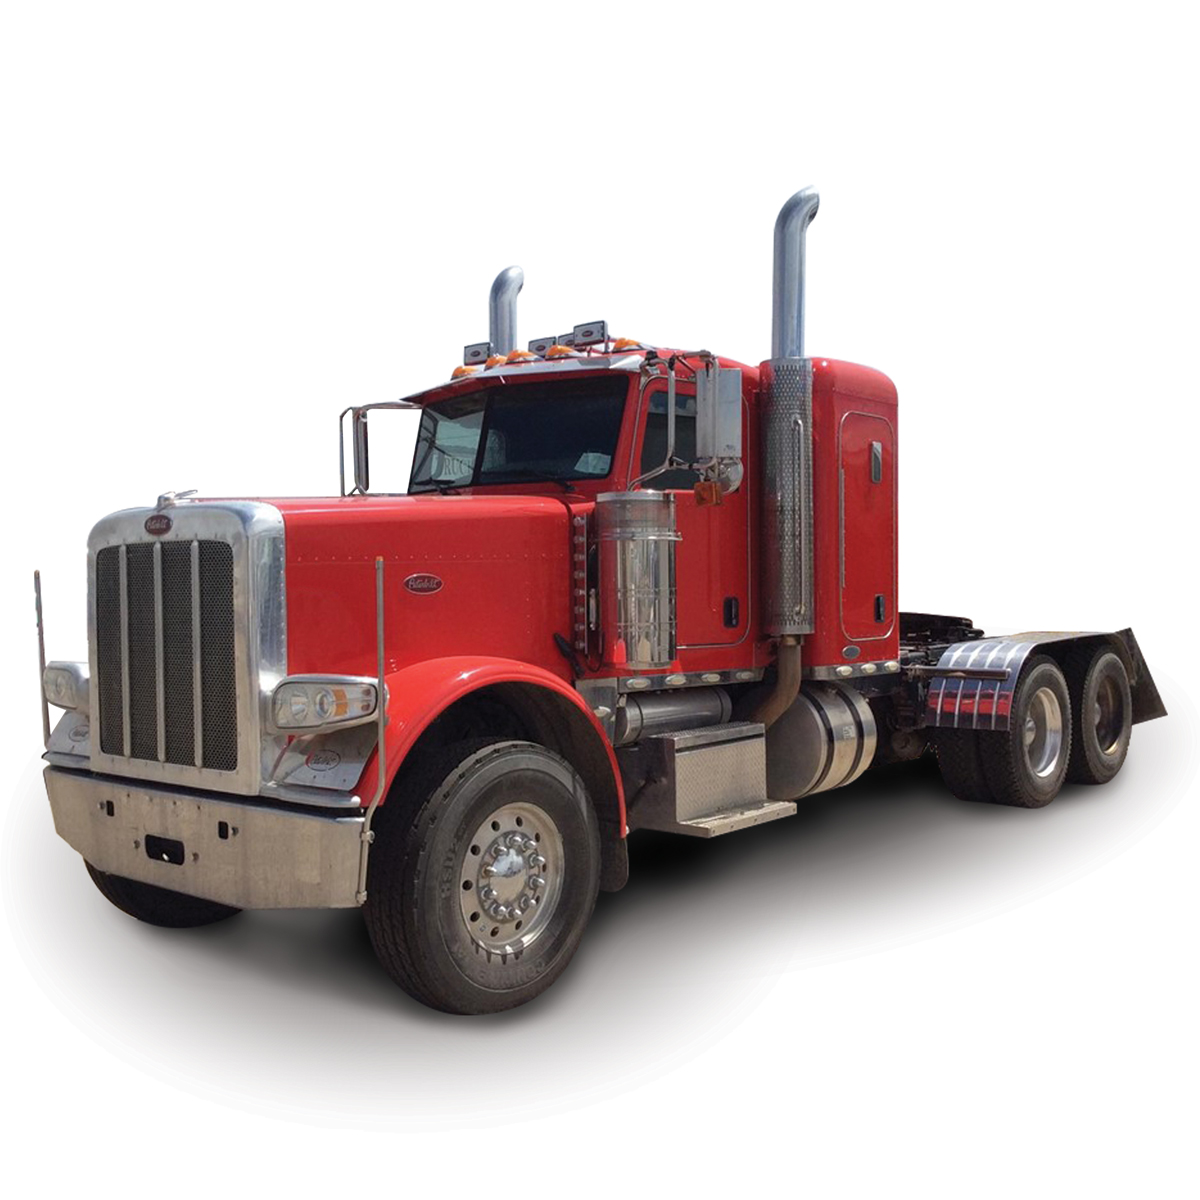 Peterbilt - Browse by truck brands